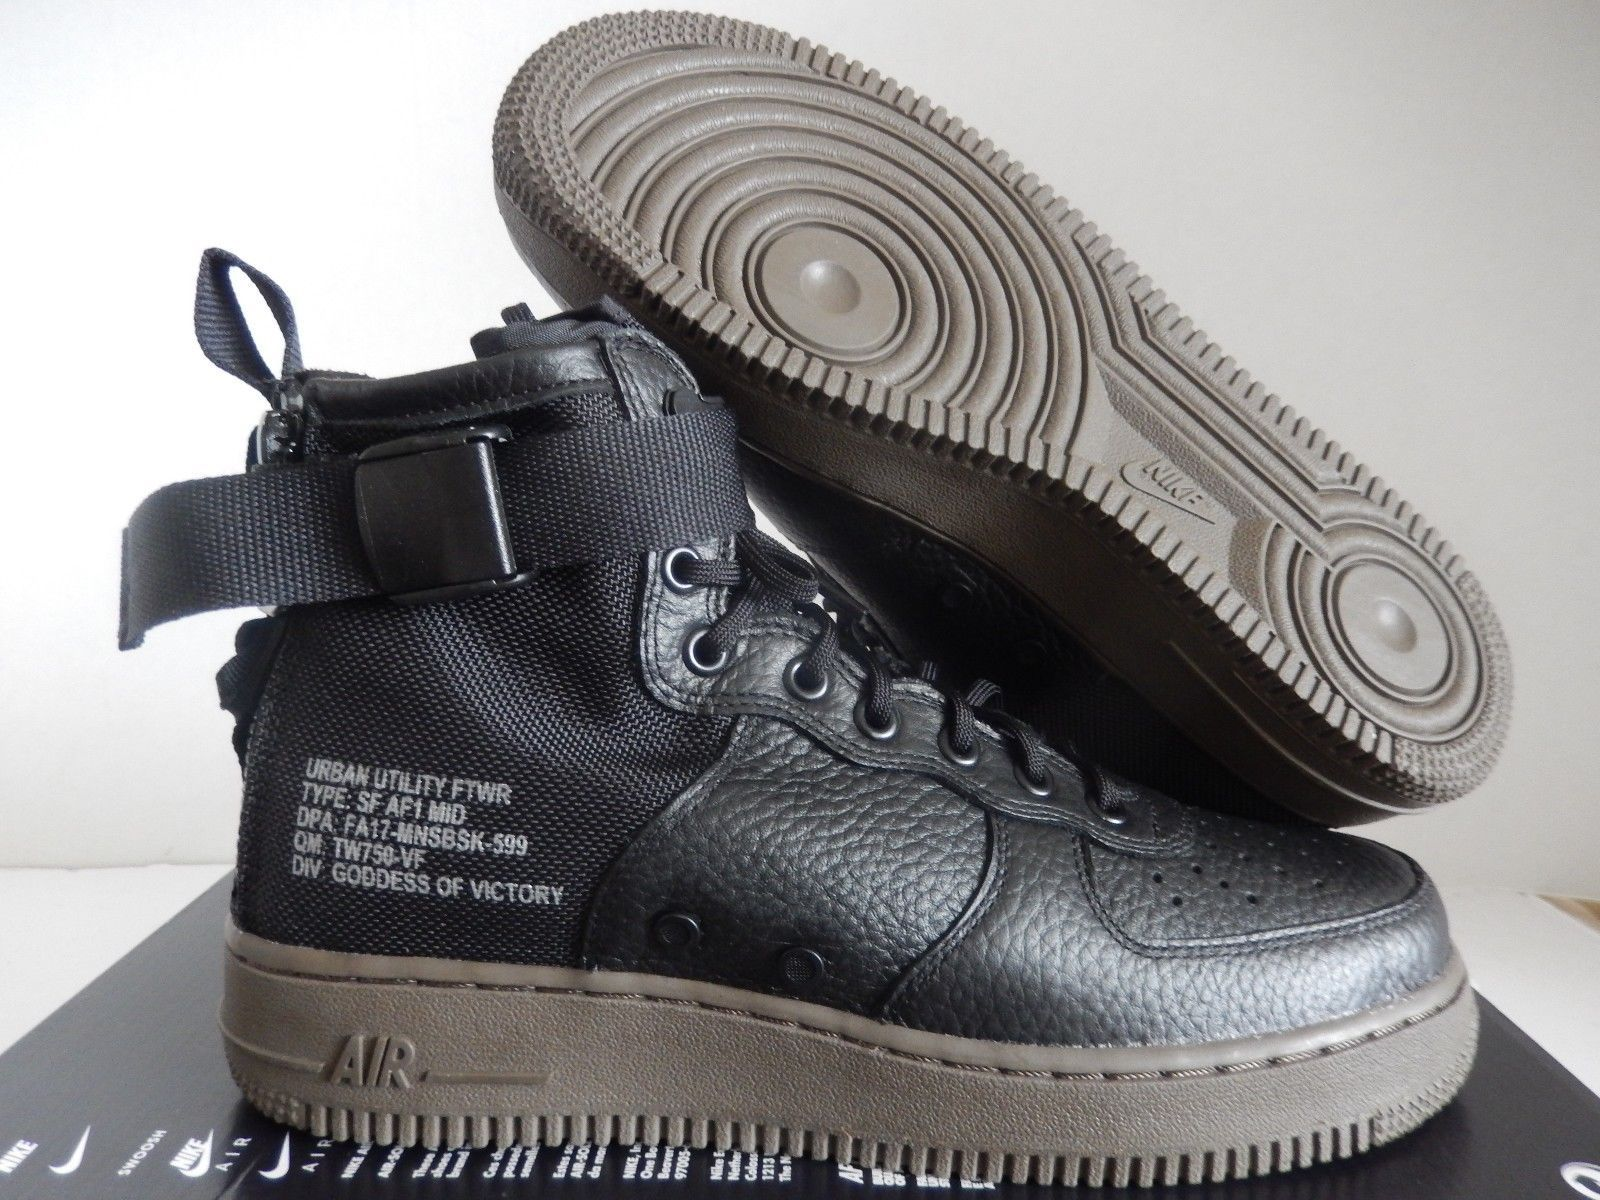 on sale f1447 6ae41 Air Force 1 Mid, Nike Air Force Ones, Hypebeast, Black Dark, Special